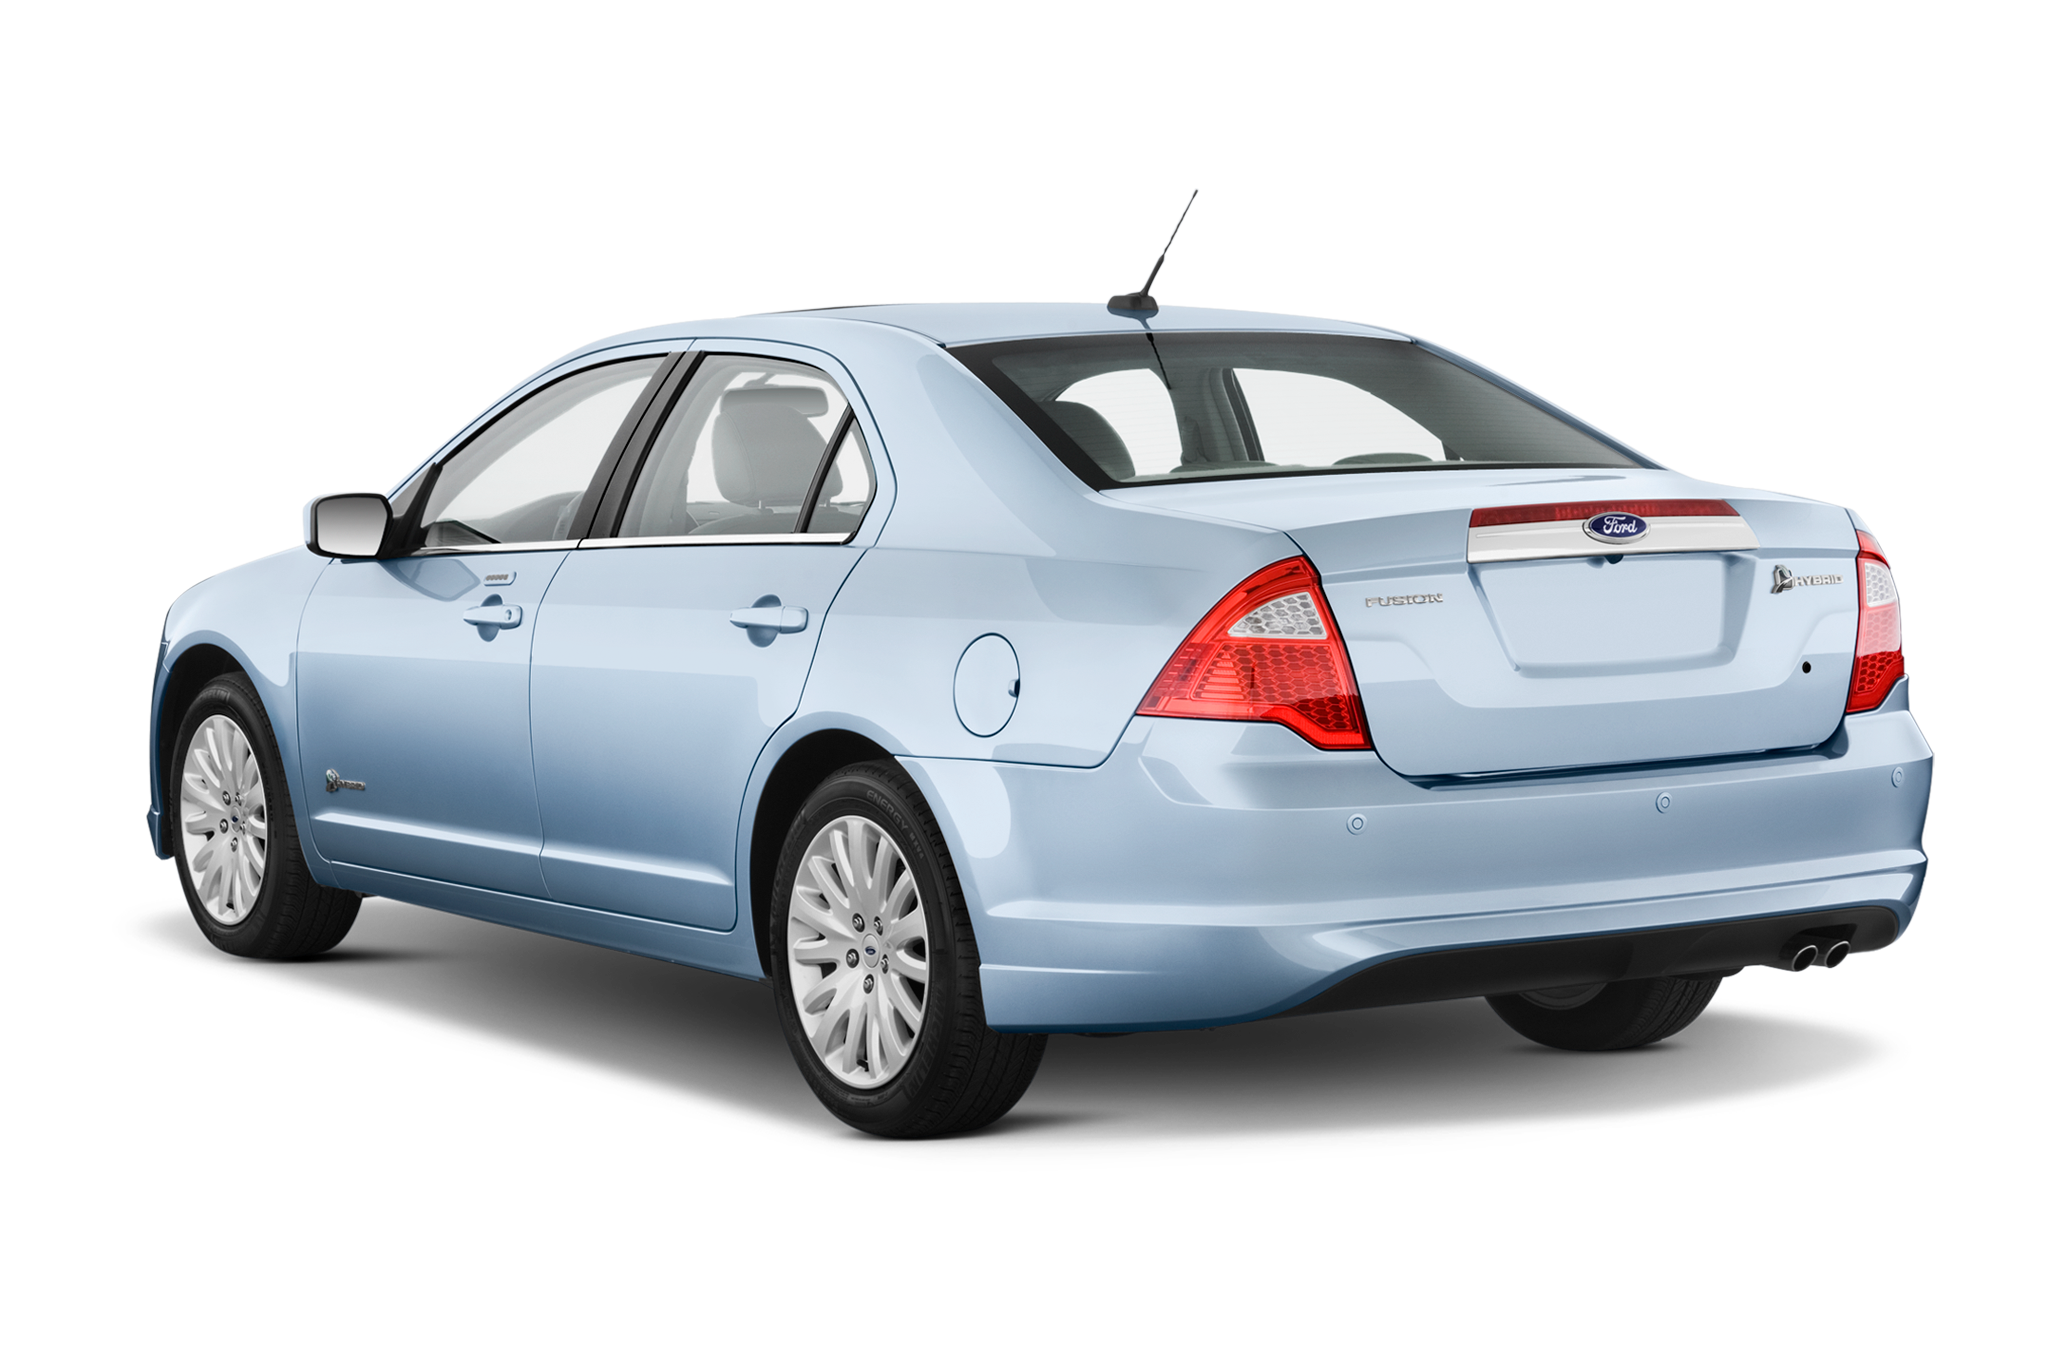 Ford Fusion (North America) I 2005 - 2012 Sedan #5